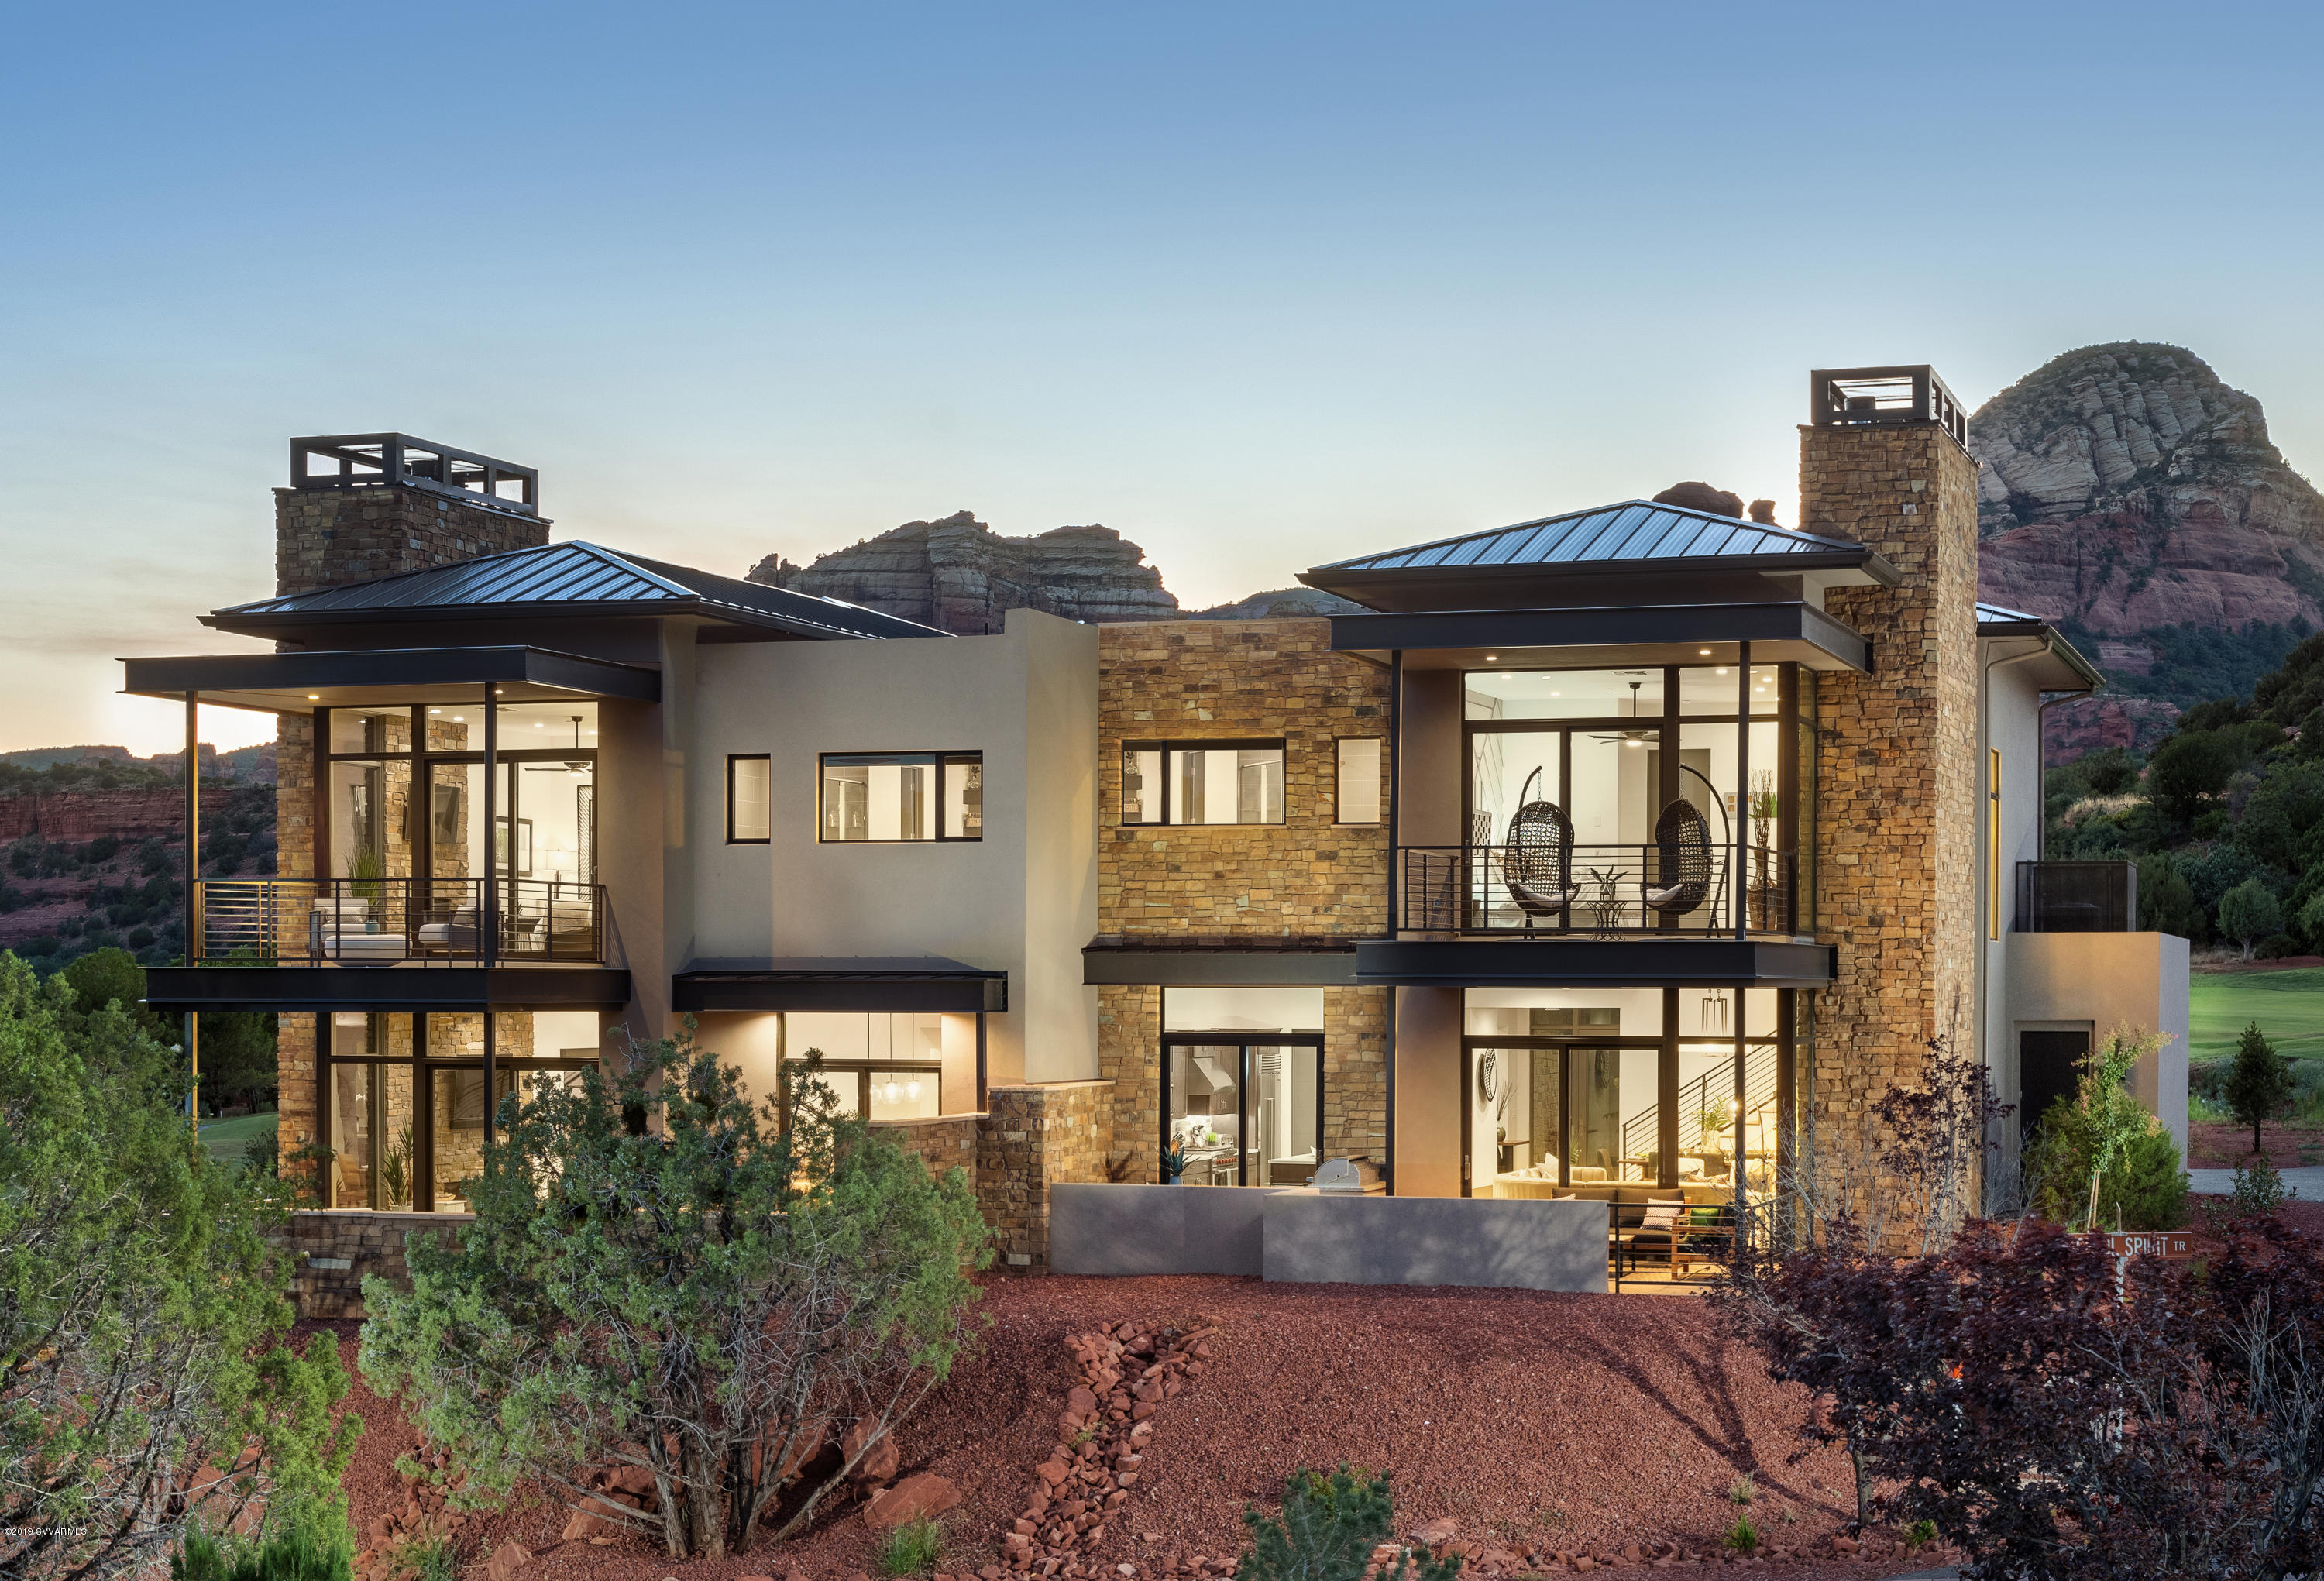 208 Peaceful Spirit Tr Sedona, AZ 86336